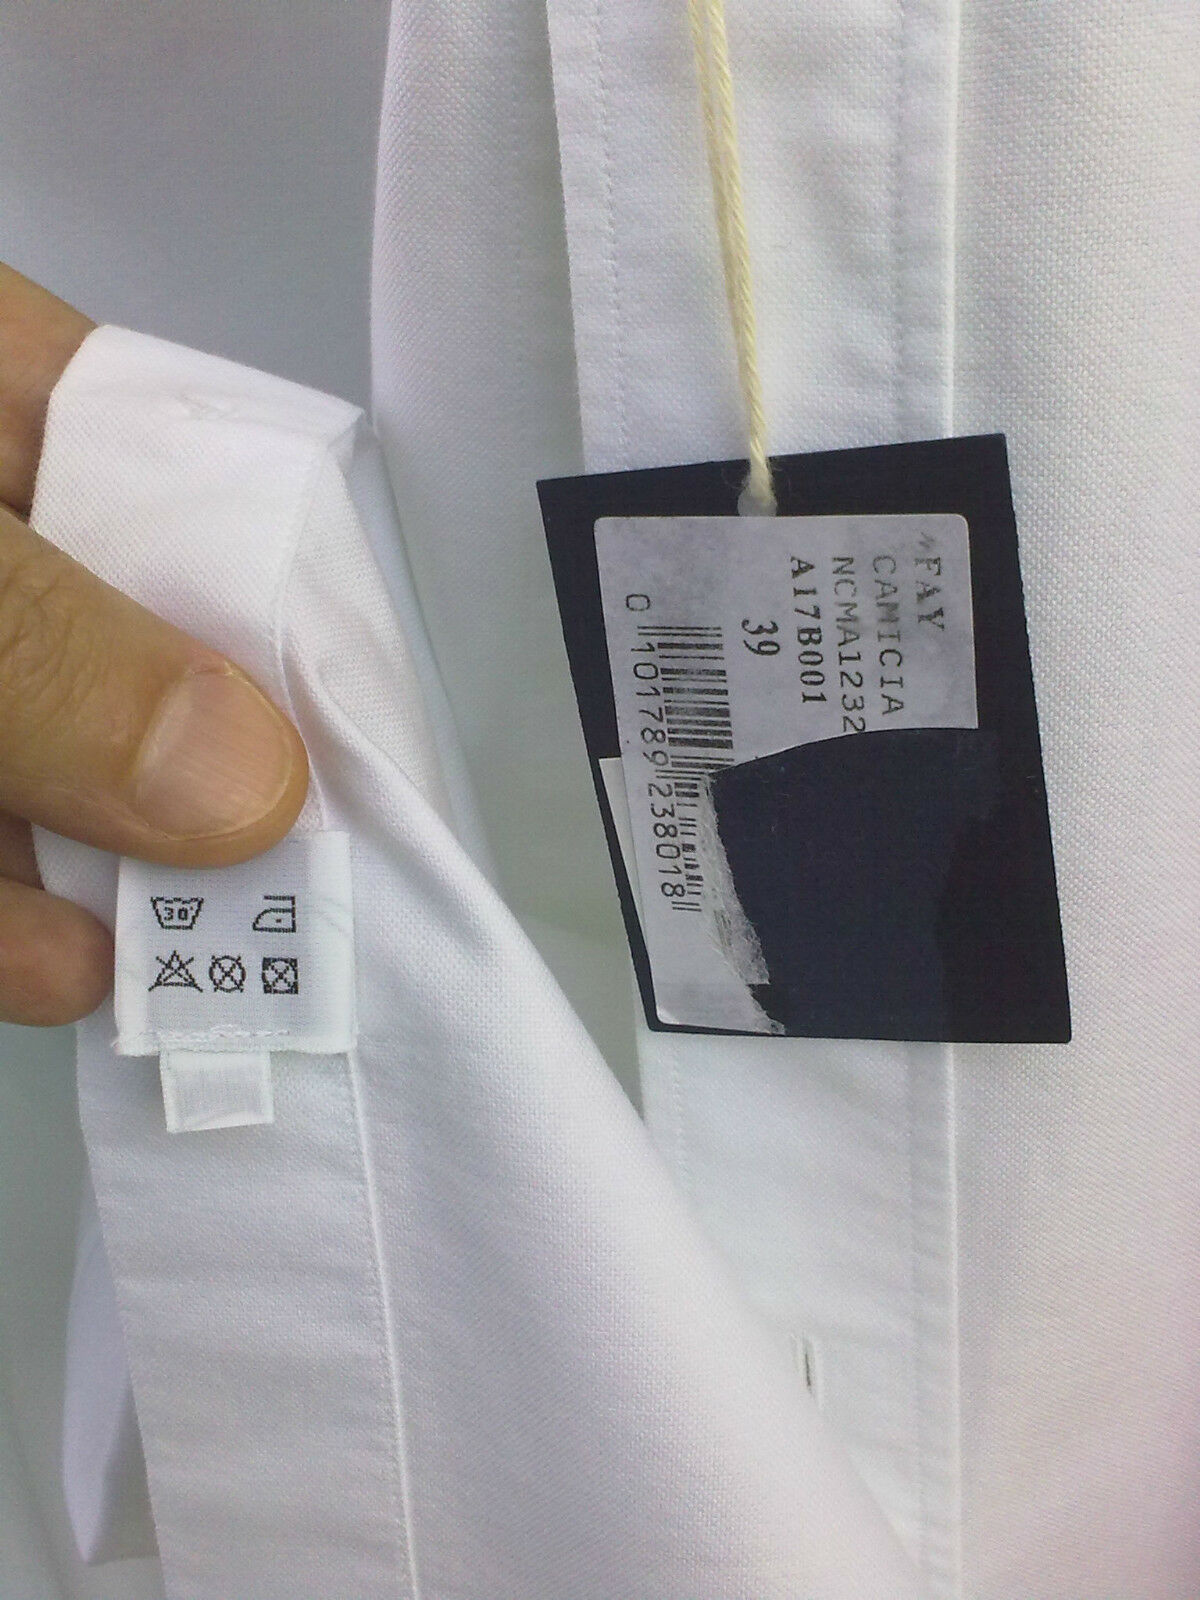 Camicia bianca FAY-TOD'S GROUP,Tg.M-collo 39,100% MADE MADE MADE IN ITALY,PERFETTA  d787d8